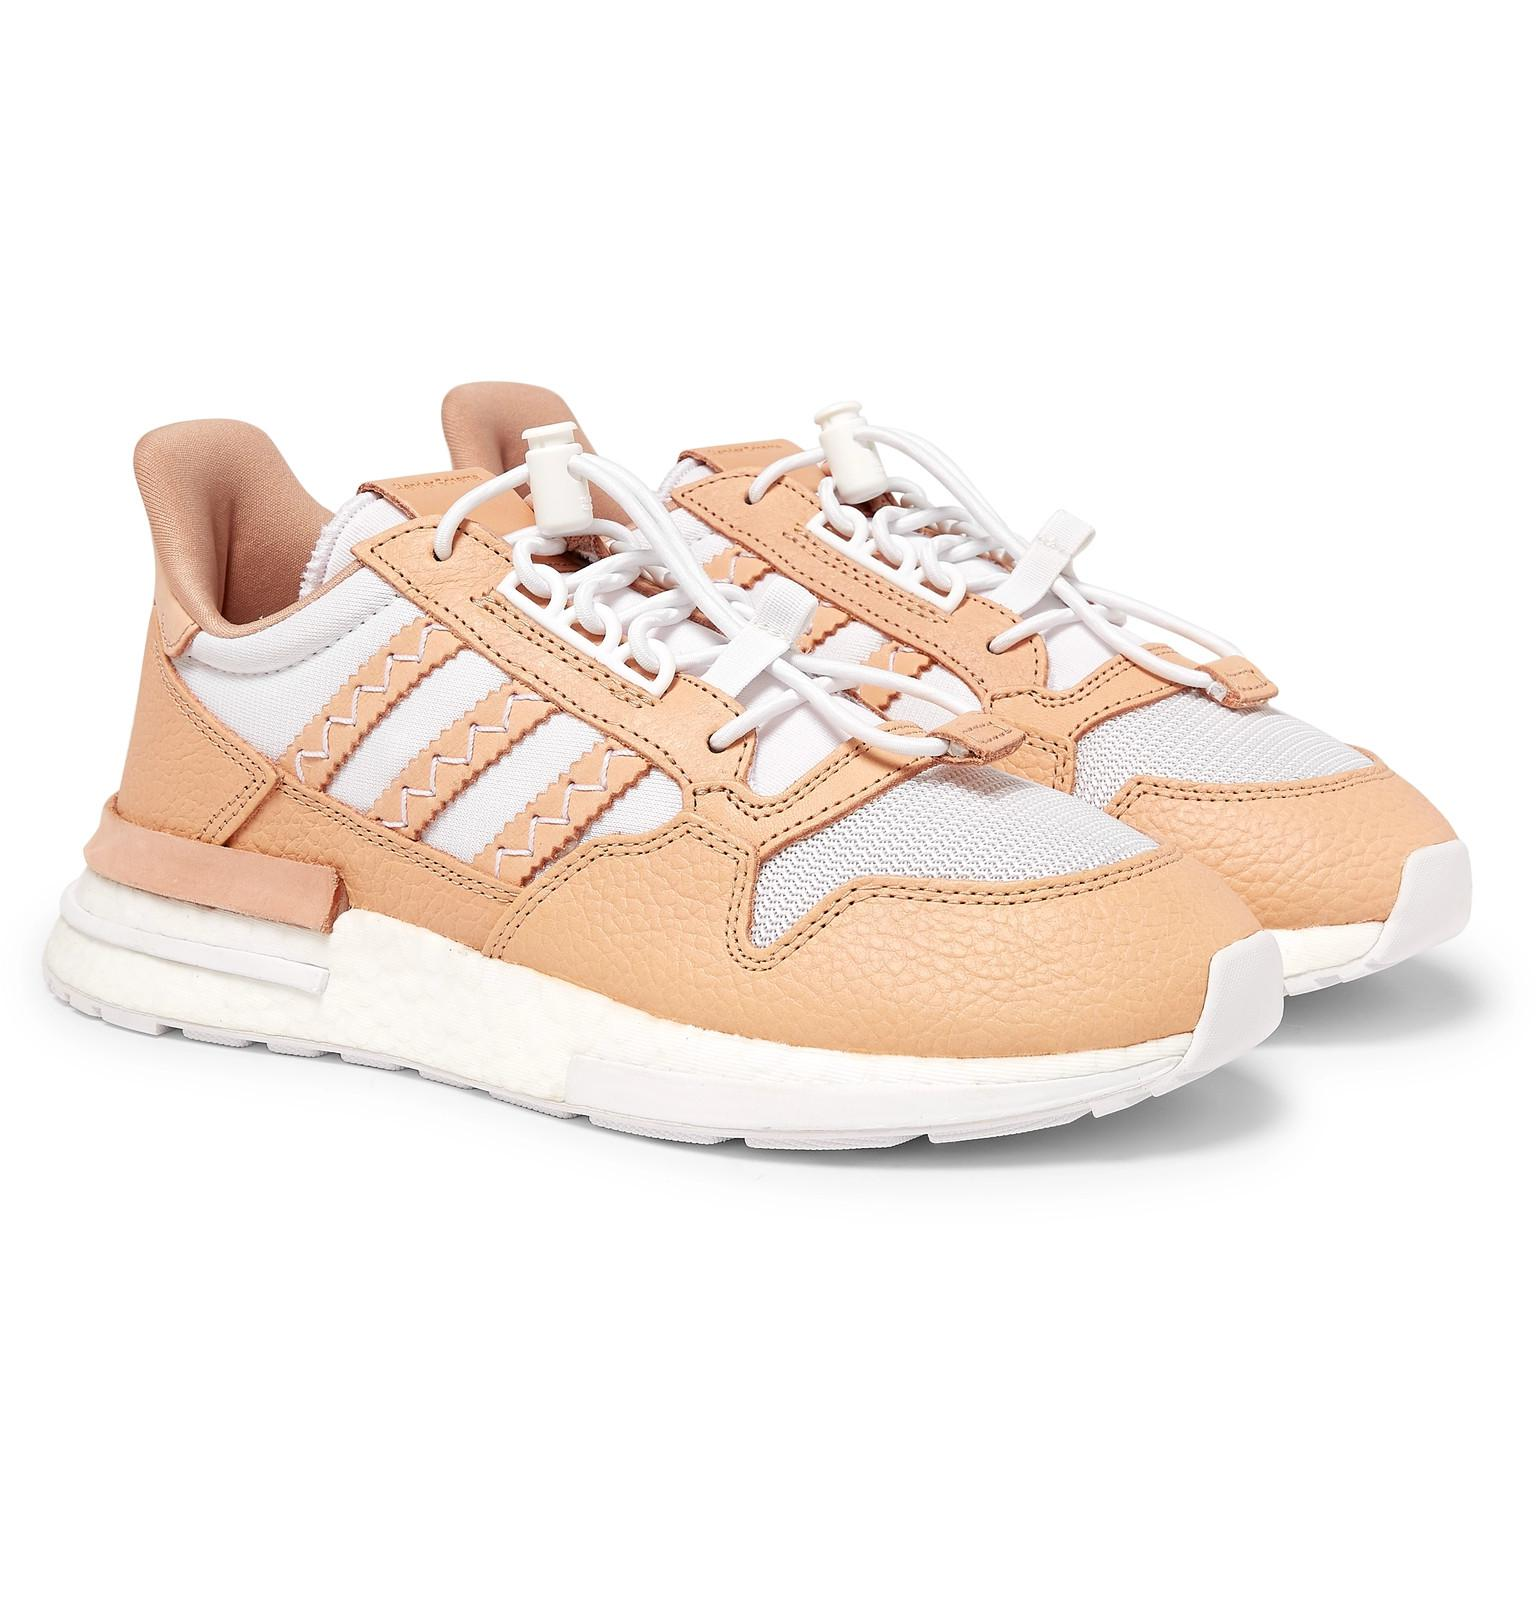 ff816f16a5b6 adidas Originals. Men s White Hender Scheme Zx 500 Rm Mt Leather And ...